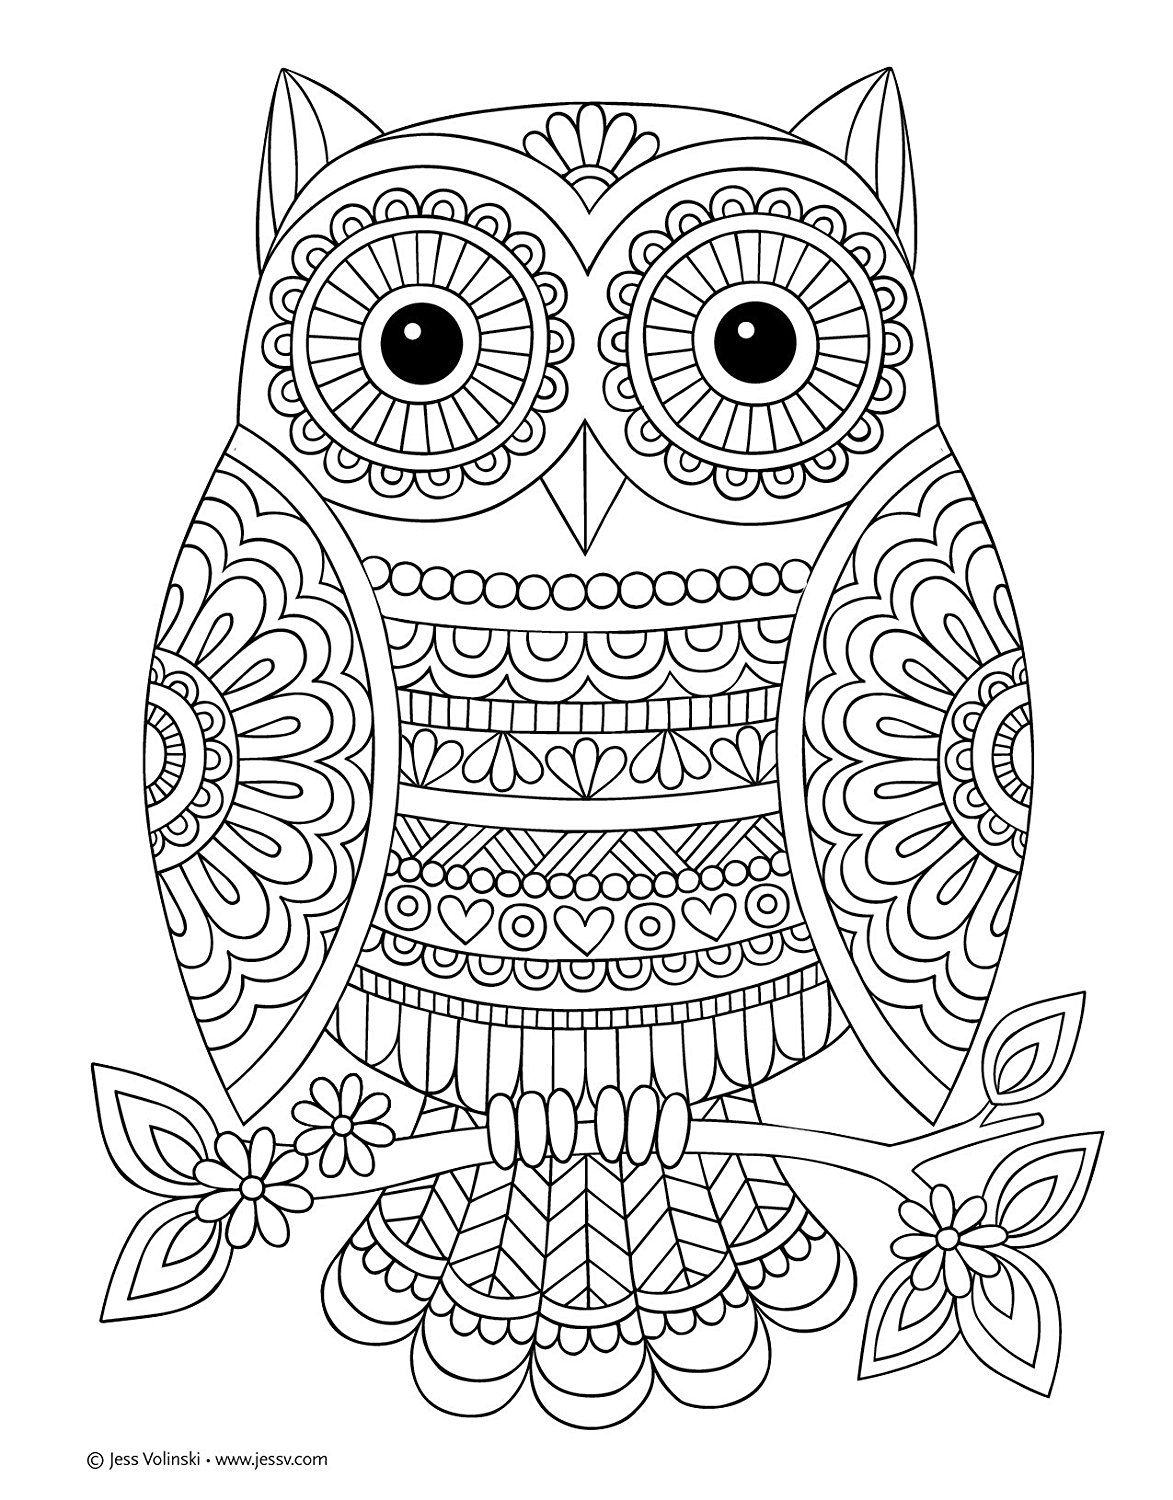 Pattern Coloring Books Owl Coloring Pages Animal Coloring Pages Coloring Books